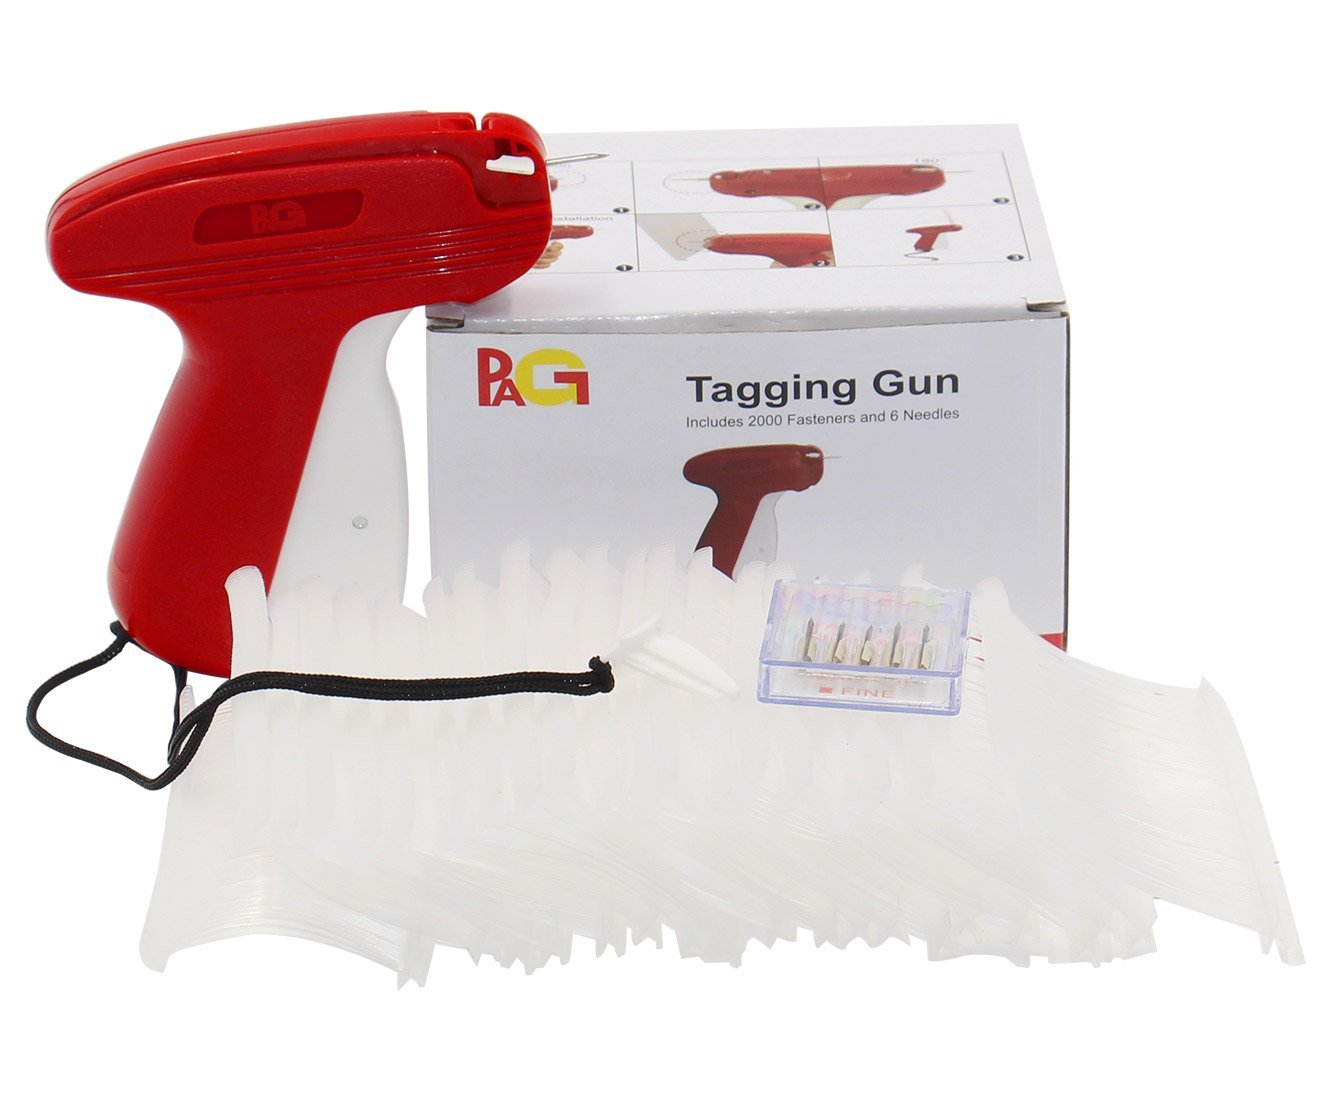 """PAG New Upgrade Fine Tagging Gun Price Tag Attacher Gun for Clothing with 6 Needls and 2000 2"""" Barbs Fasteners, Red"""